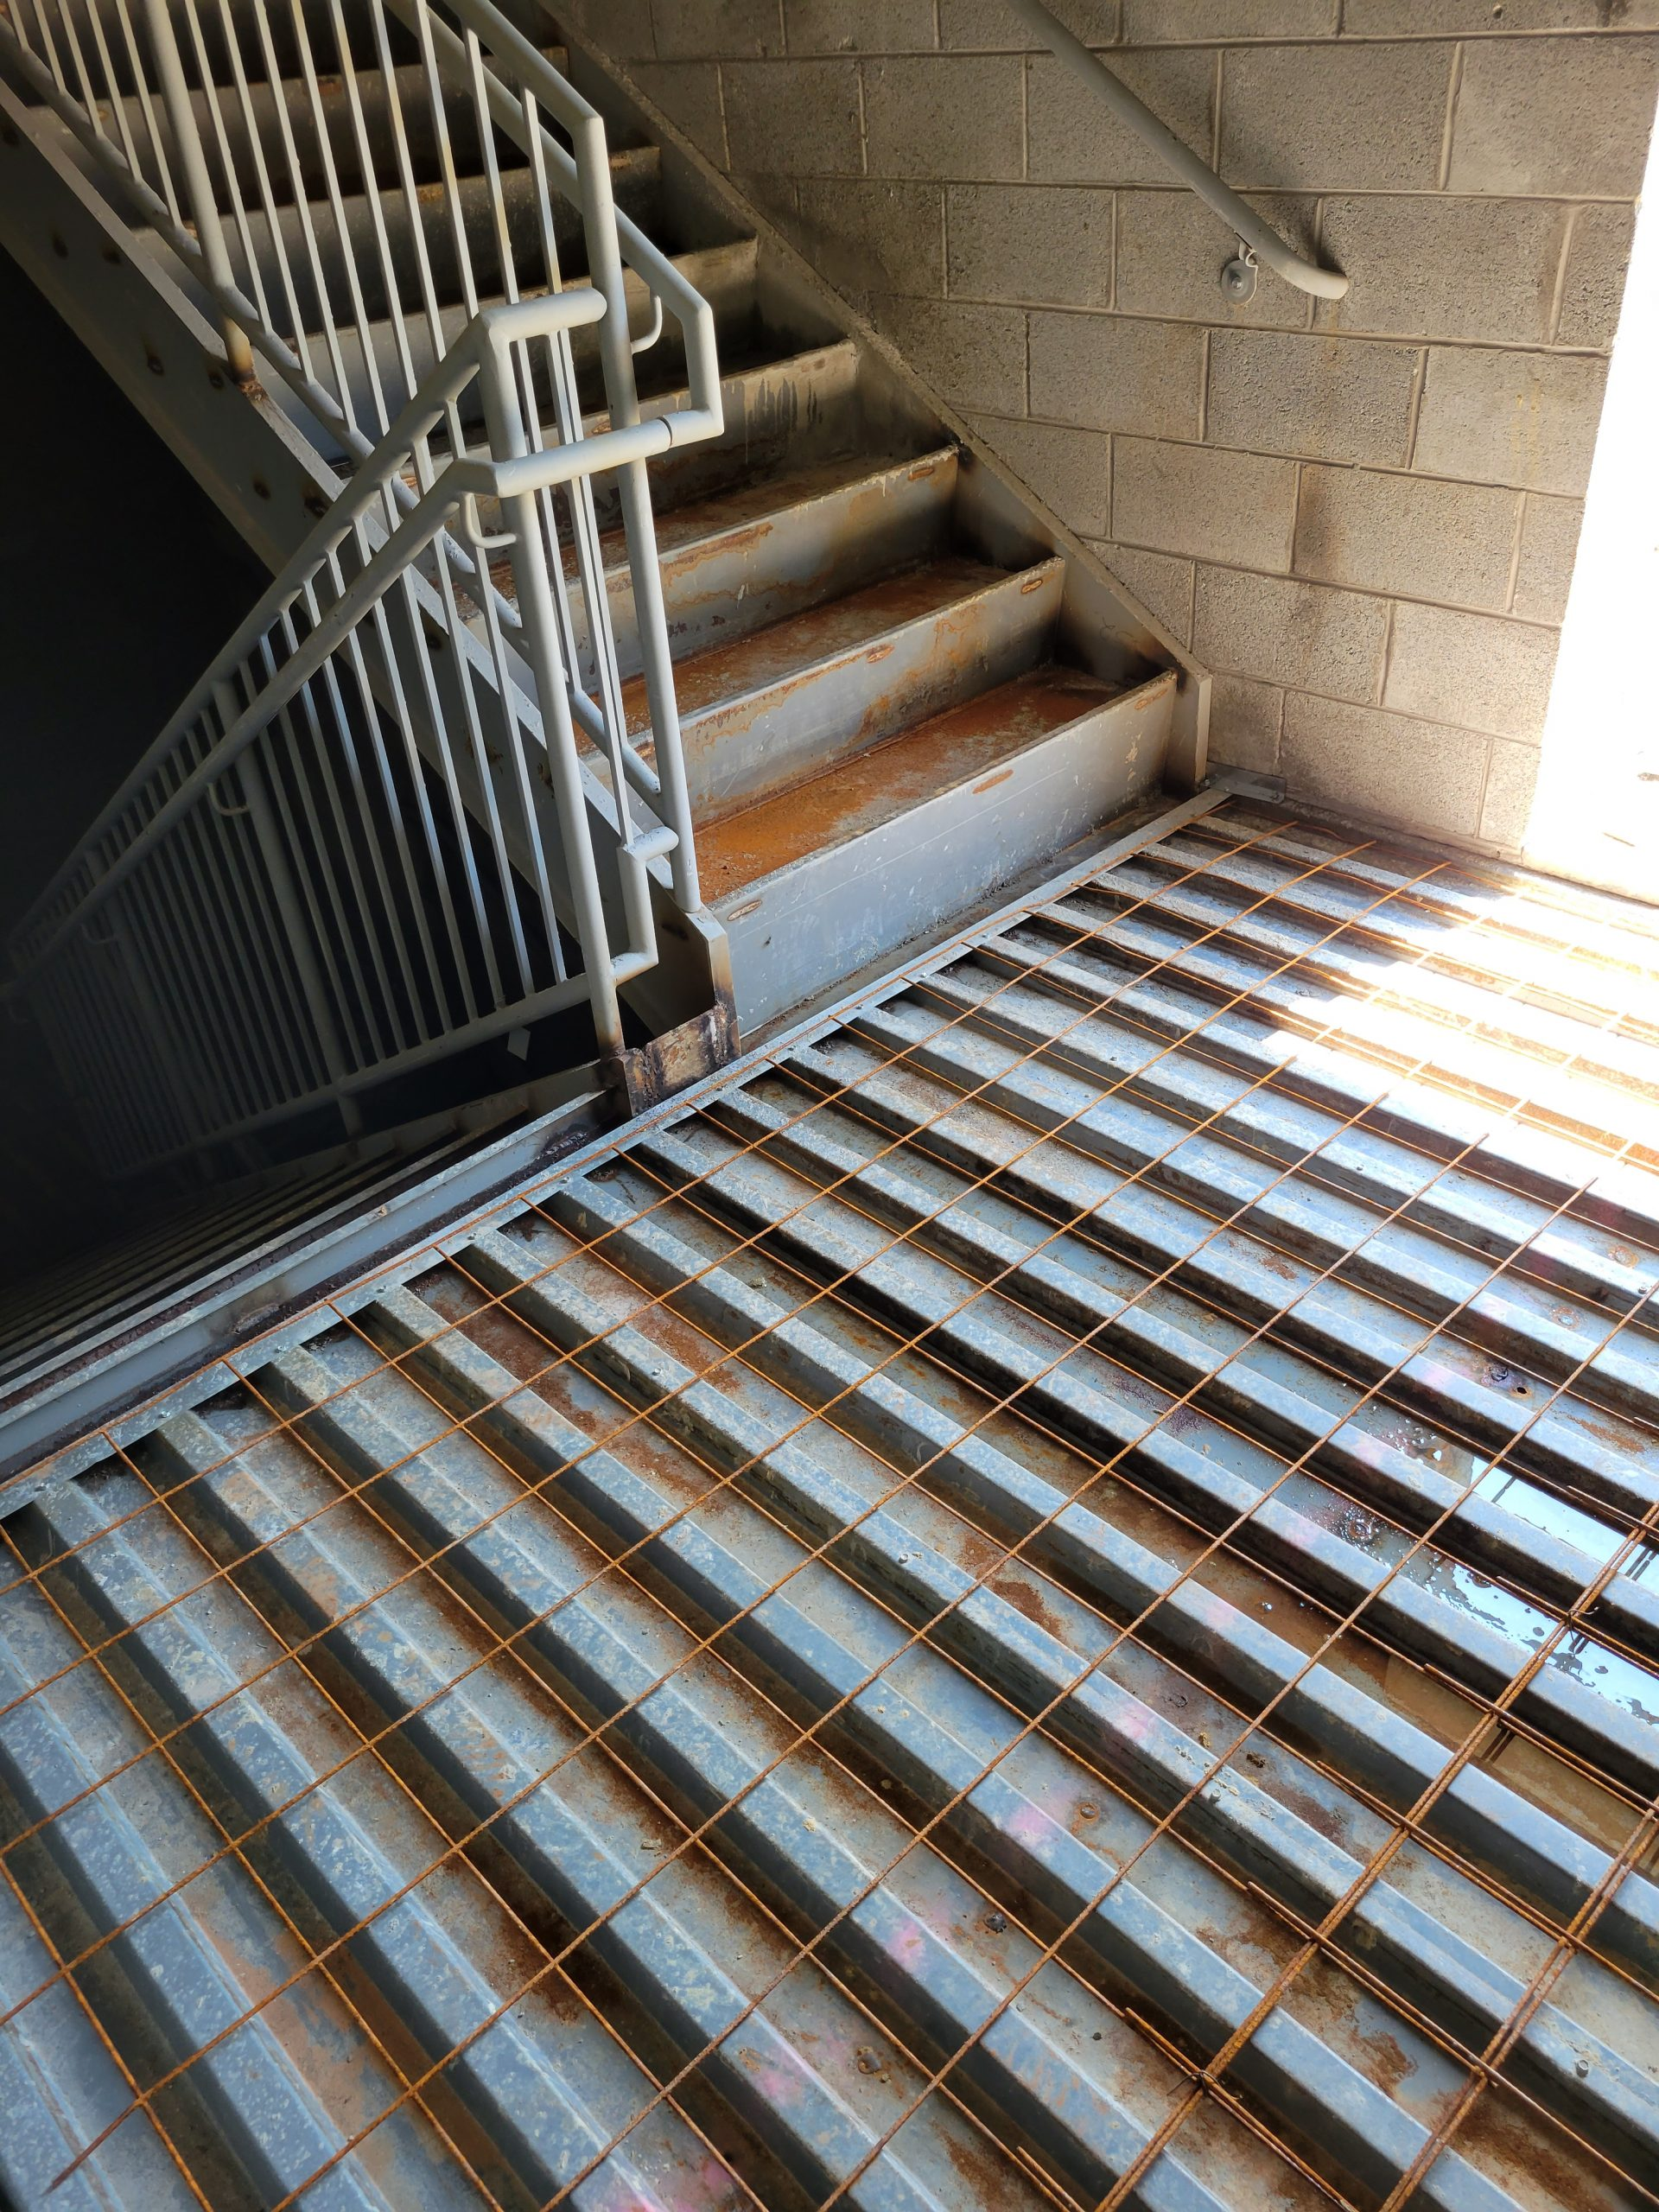 Both staircases installed and Concrete pour in progress